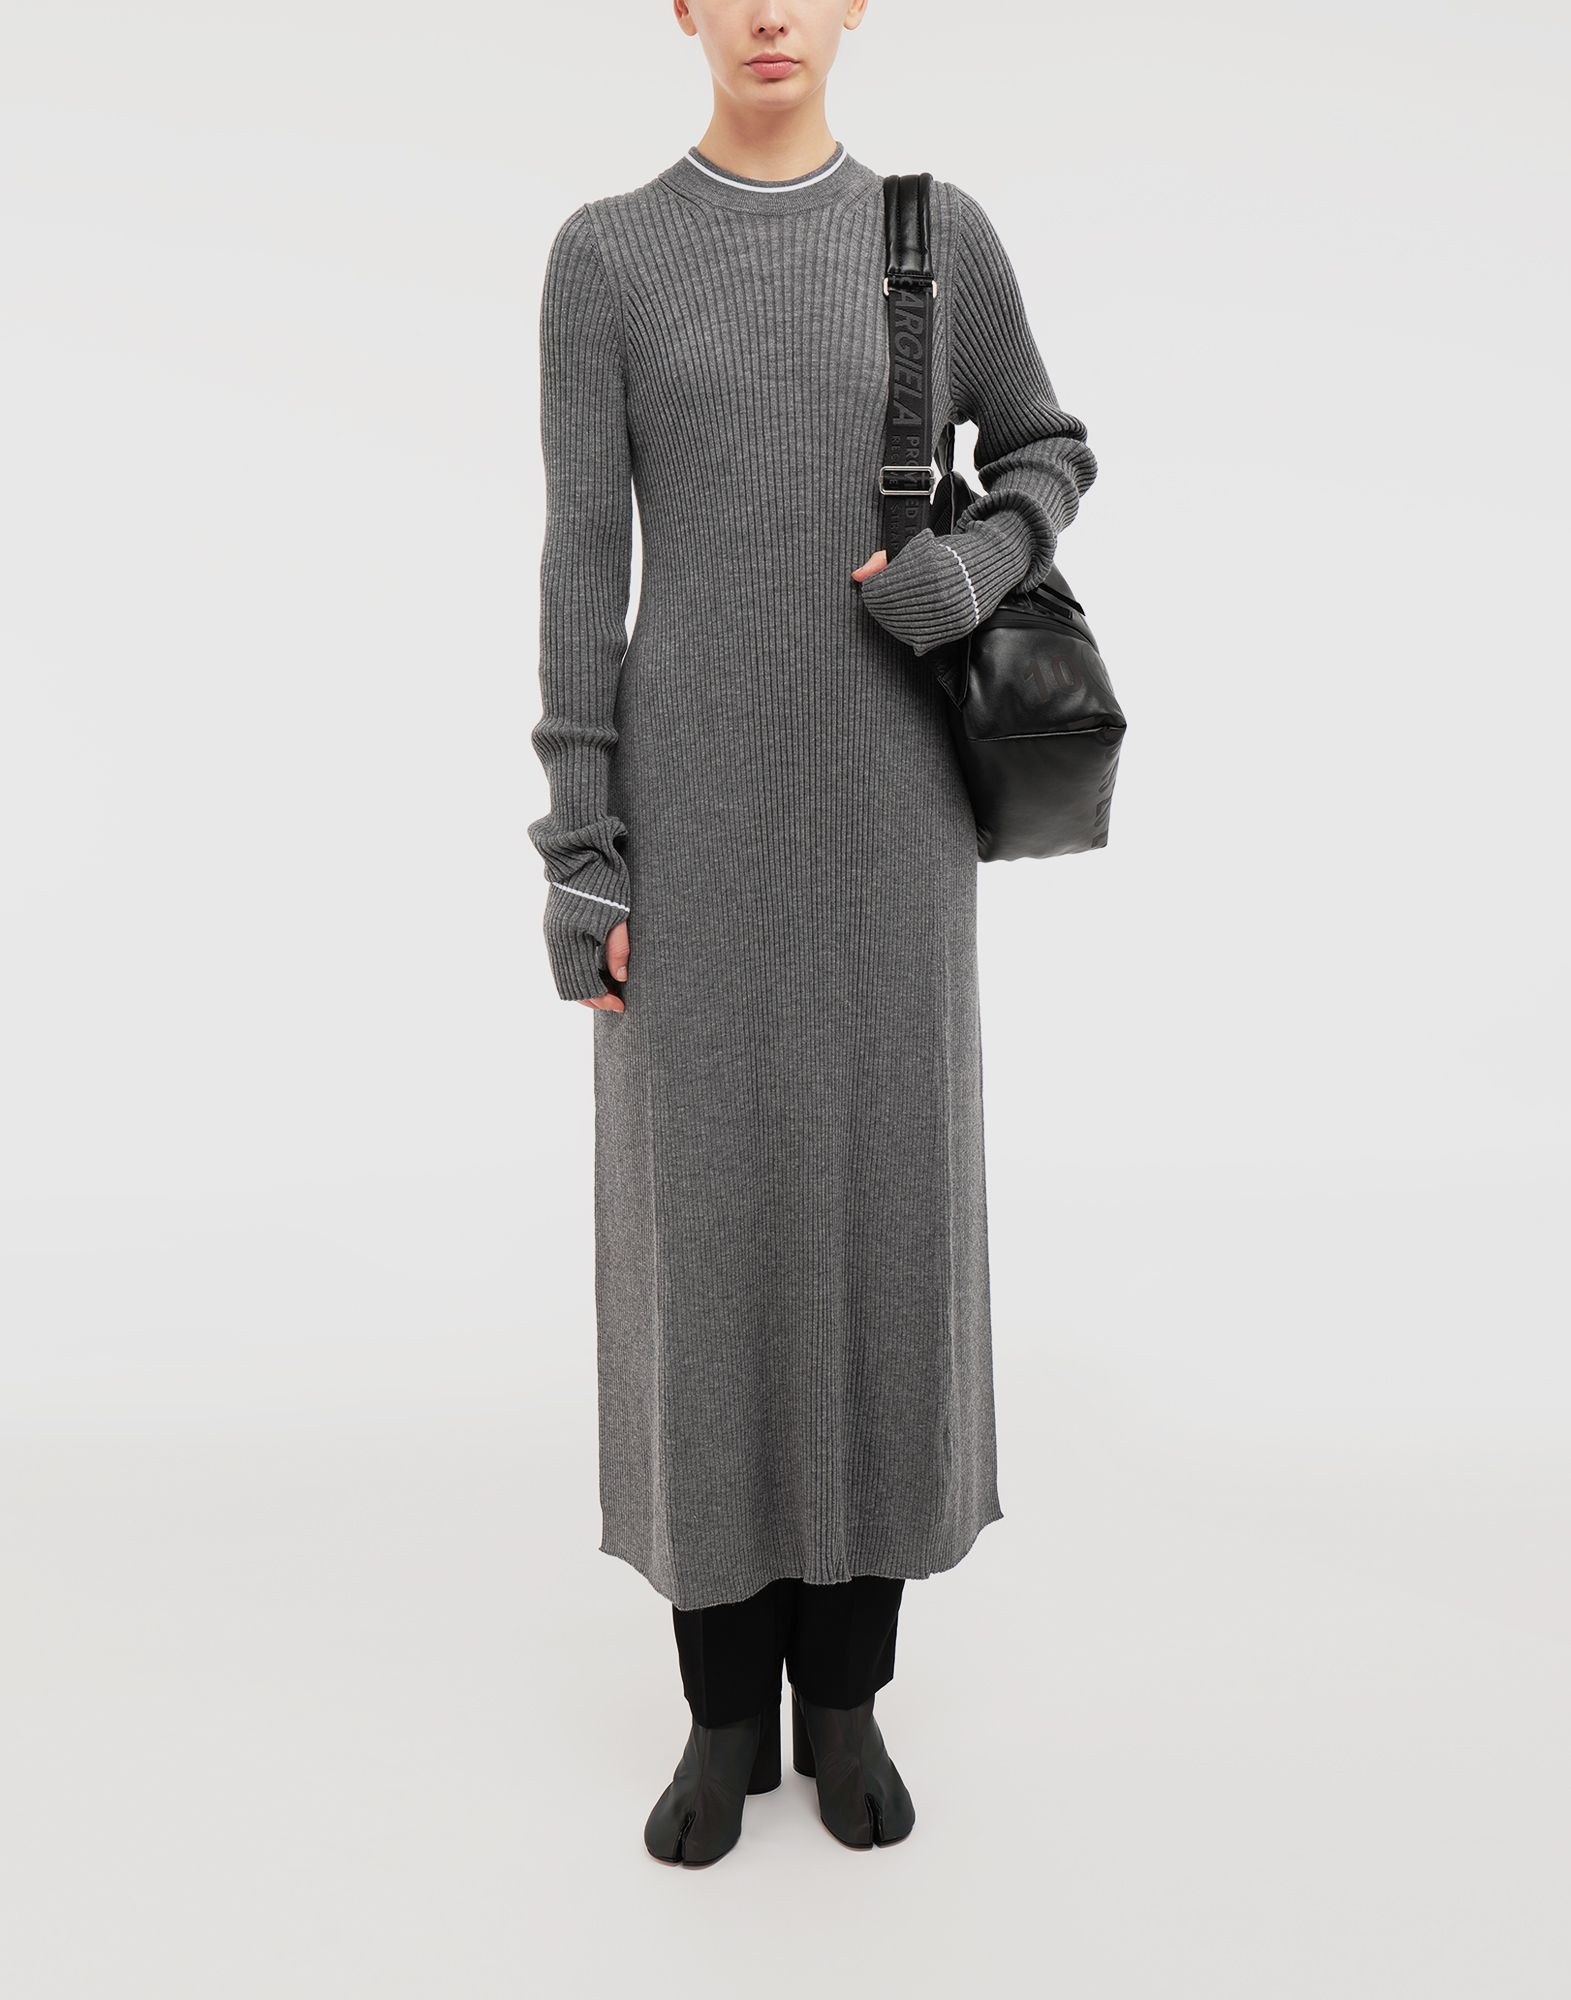 MAISON MARGIELA NewBasic Ribs knit maxi dress Dress Woman d